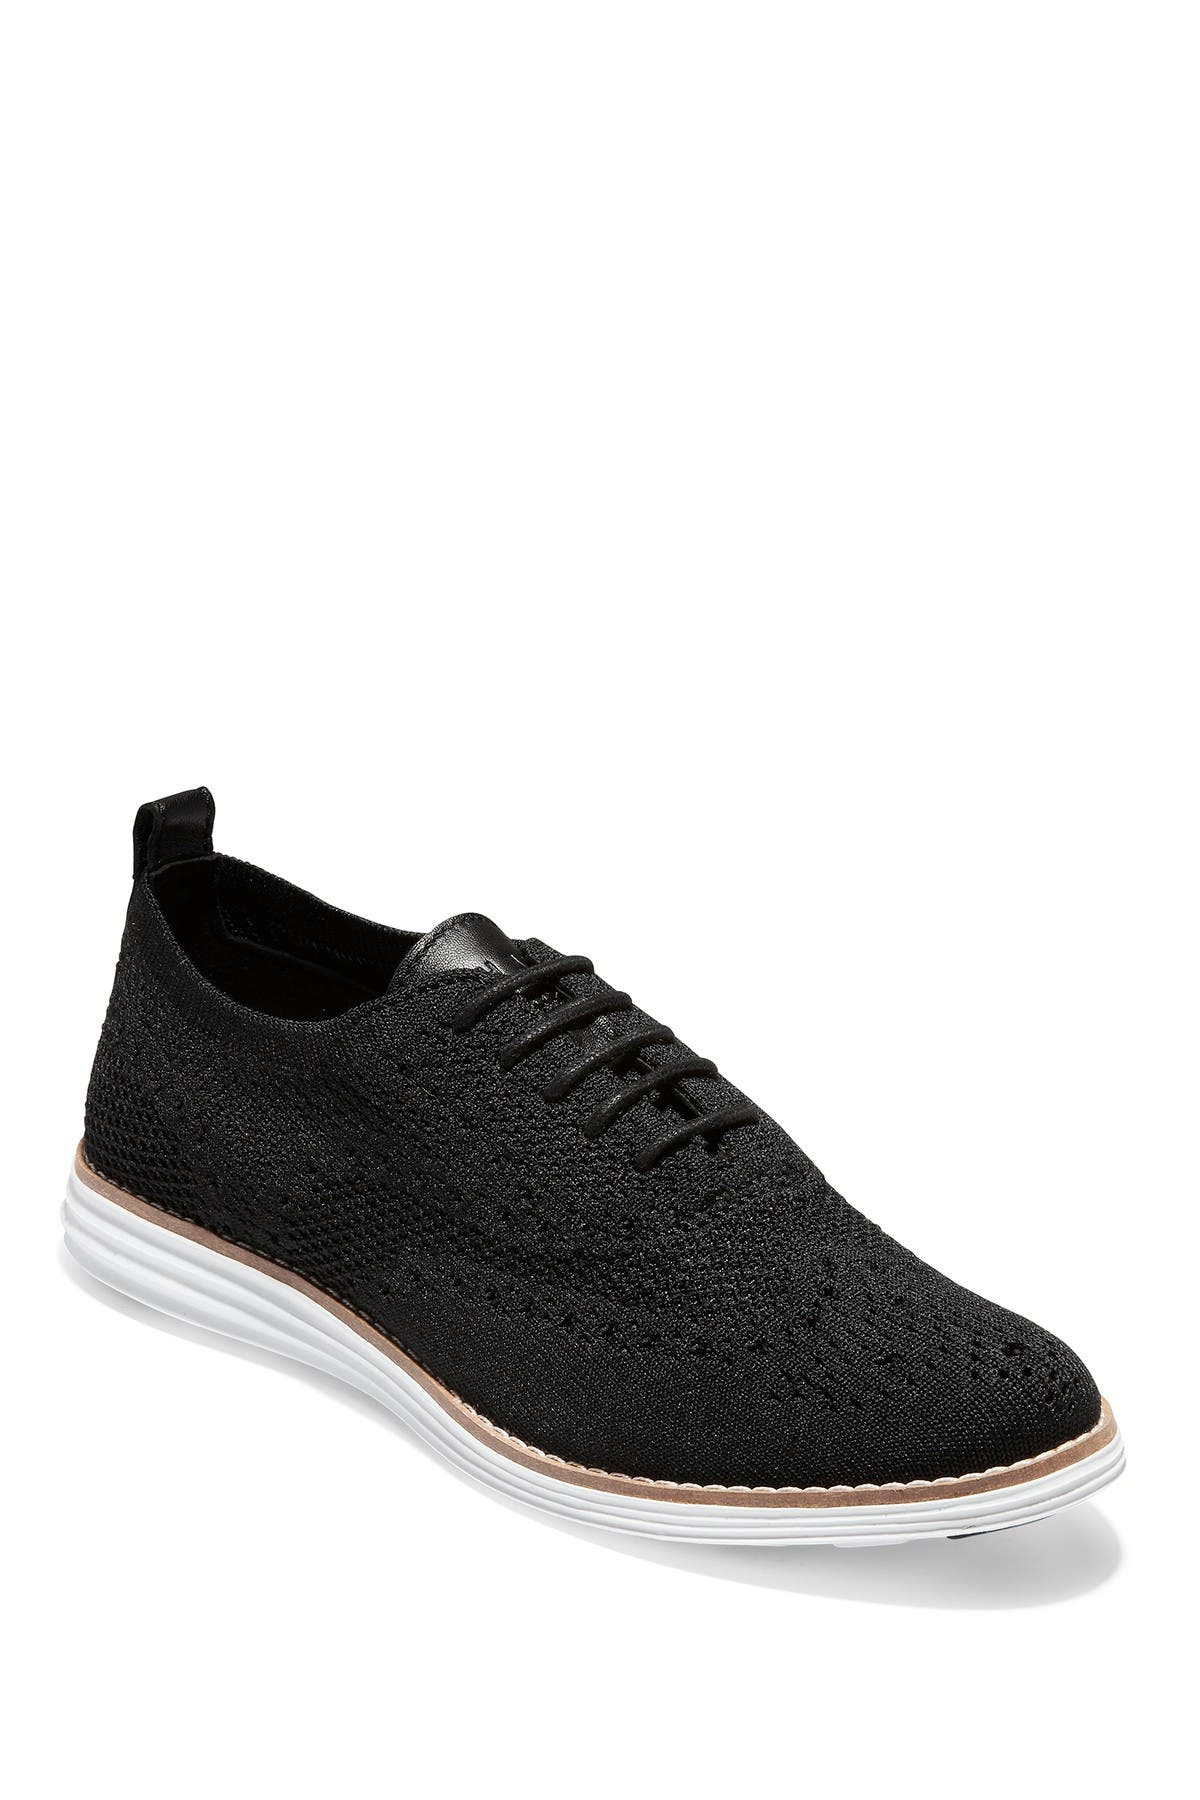 Image of Cole Haan Stitchlite Wingtip Oxford Sneaker